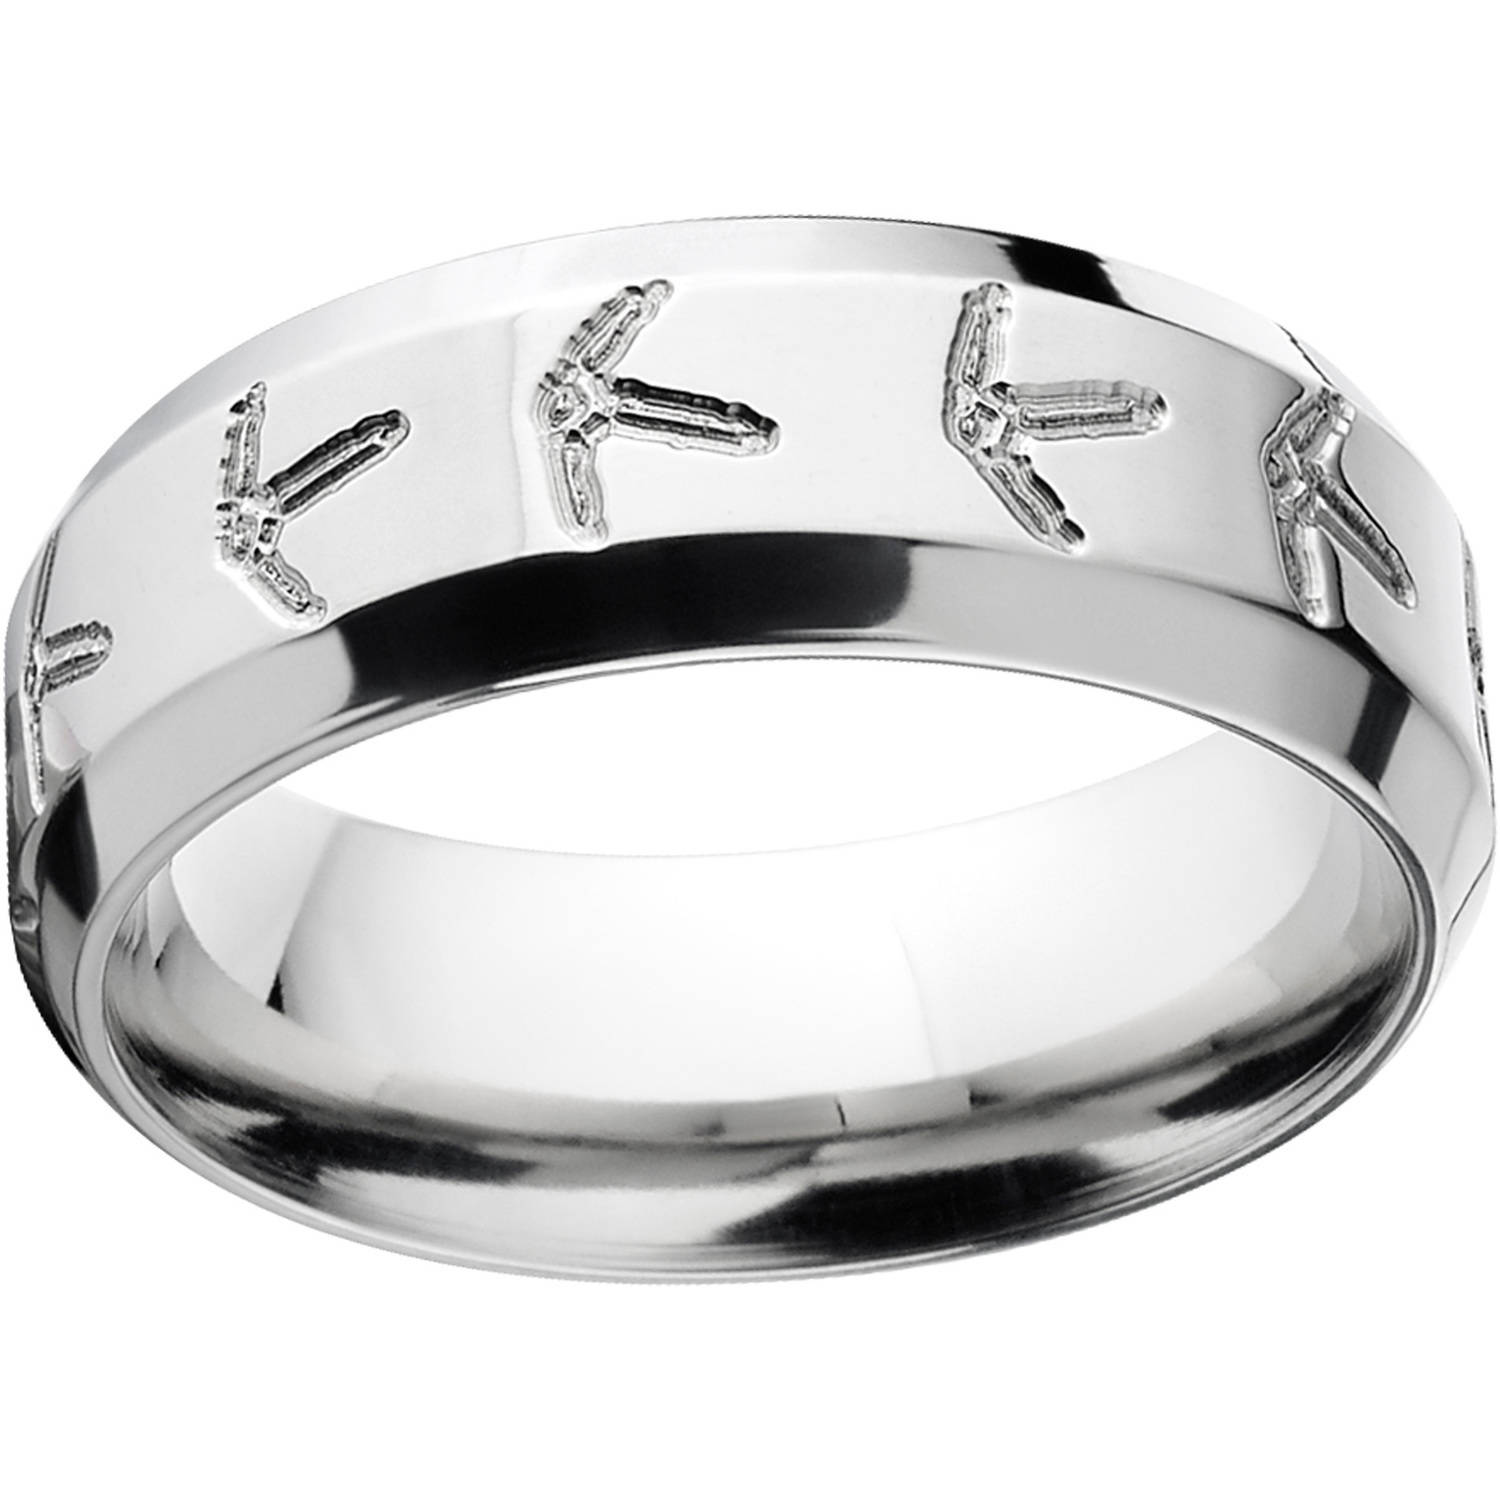 Menu0027s Turkey Track 8mm Stainless Steel Wedding Band With Comfort Fit Design